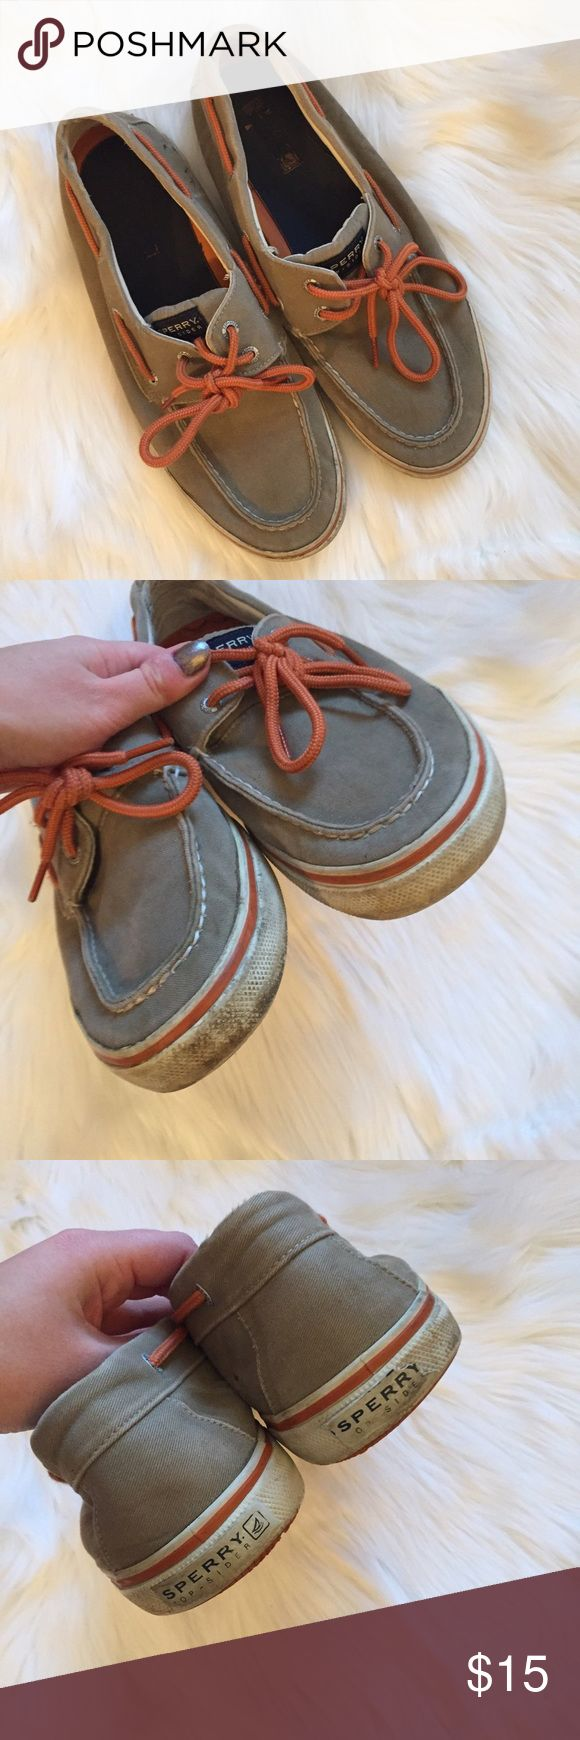 Men's Canvas Sperry Boat Shoes Good used condition. These are dirty and do have some noticeable wear, hence the low price. Noticeable wear, dirt and pen marking on lower back side. All sales final. Price is firm. Men's size 11M Sperry Top-Sider Shoes Boat Shoes